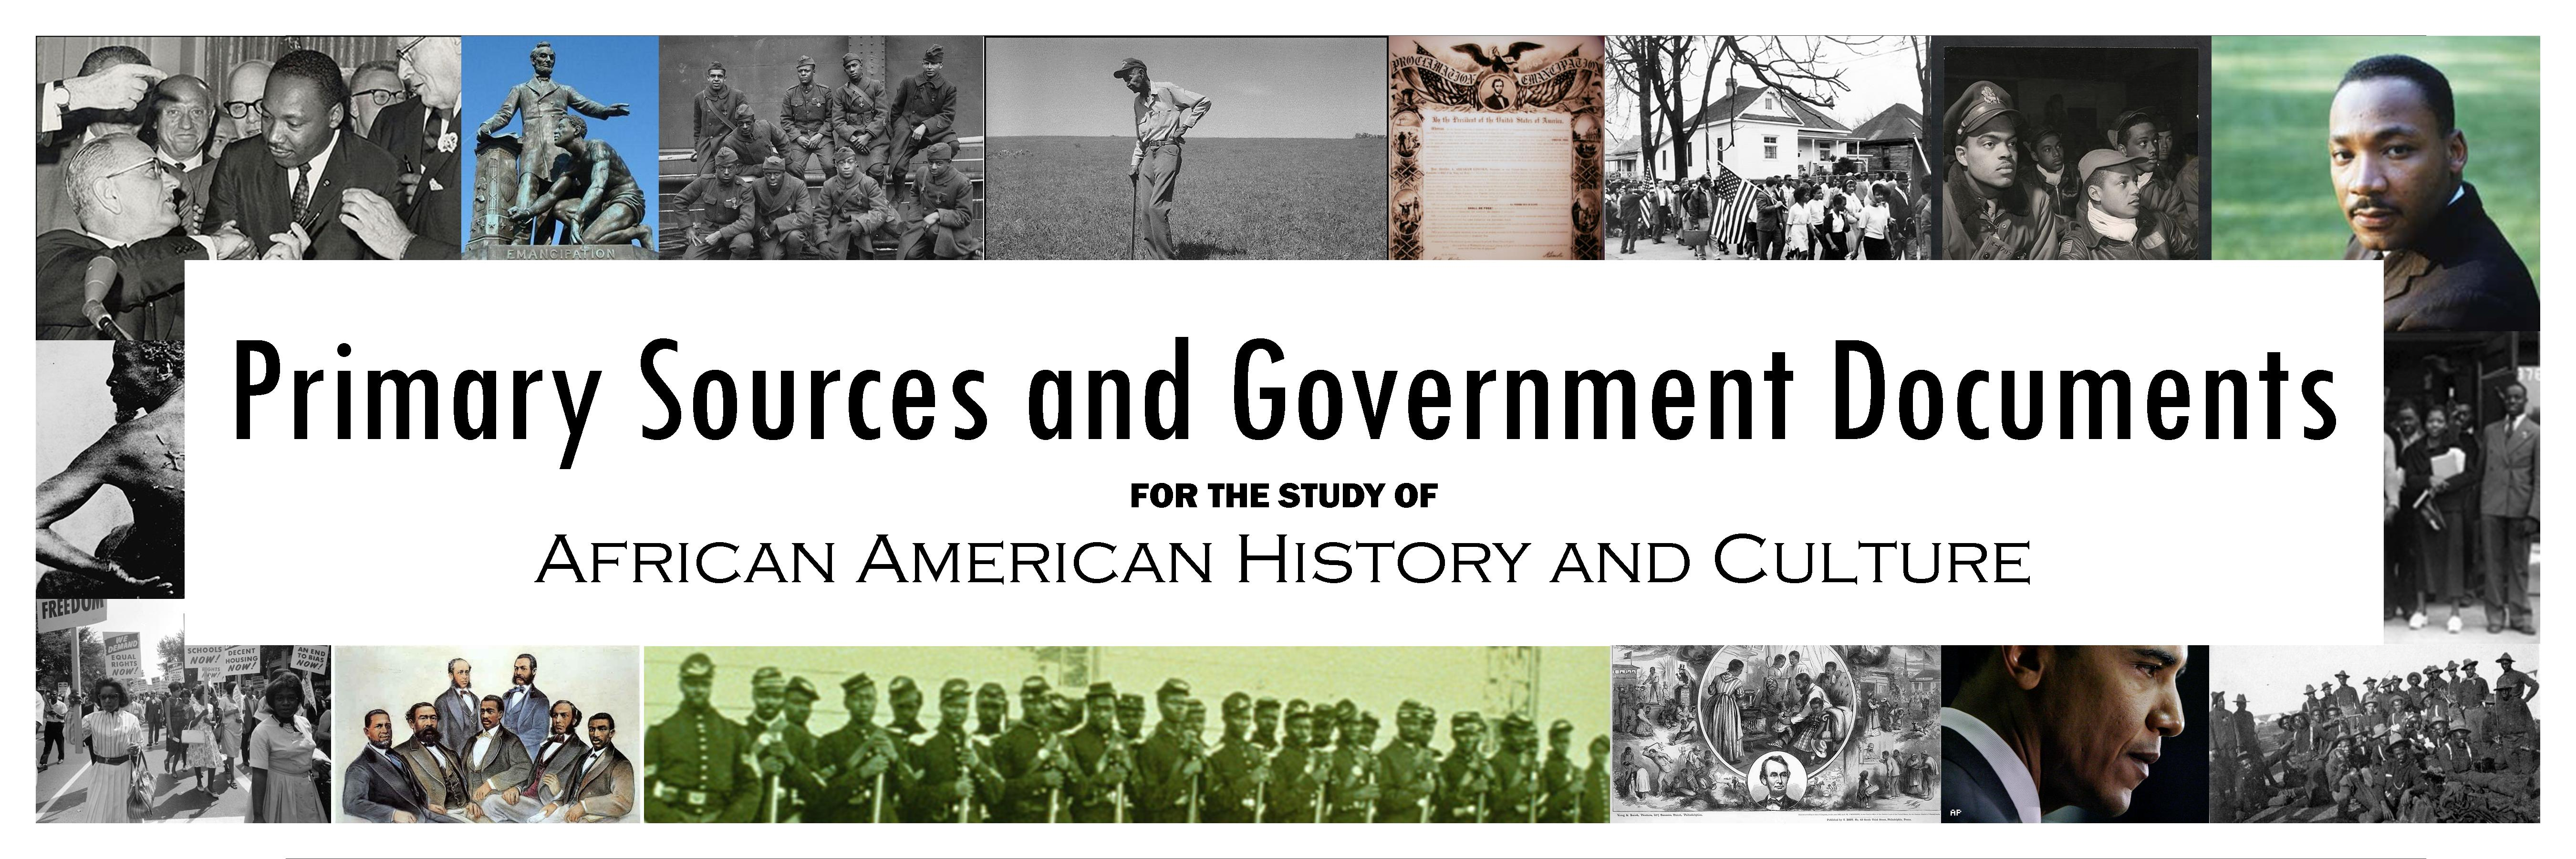 Primary Sources and Government Documents for the Study of African American History and Culture